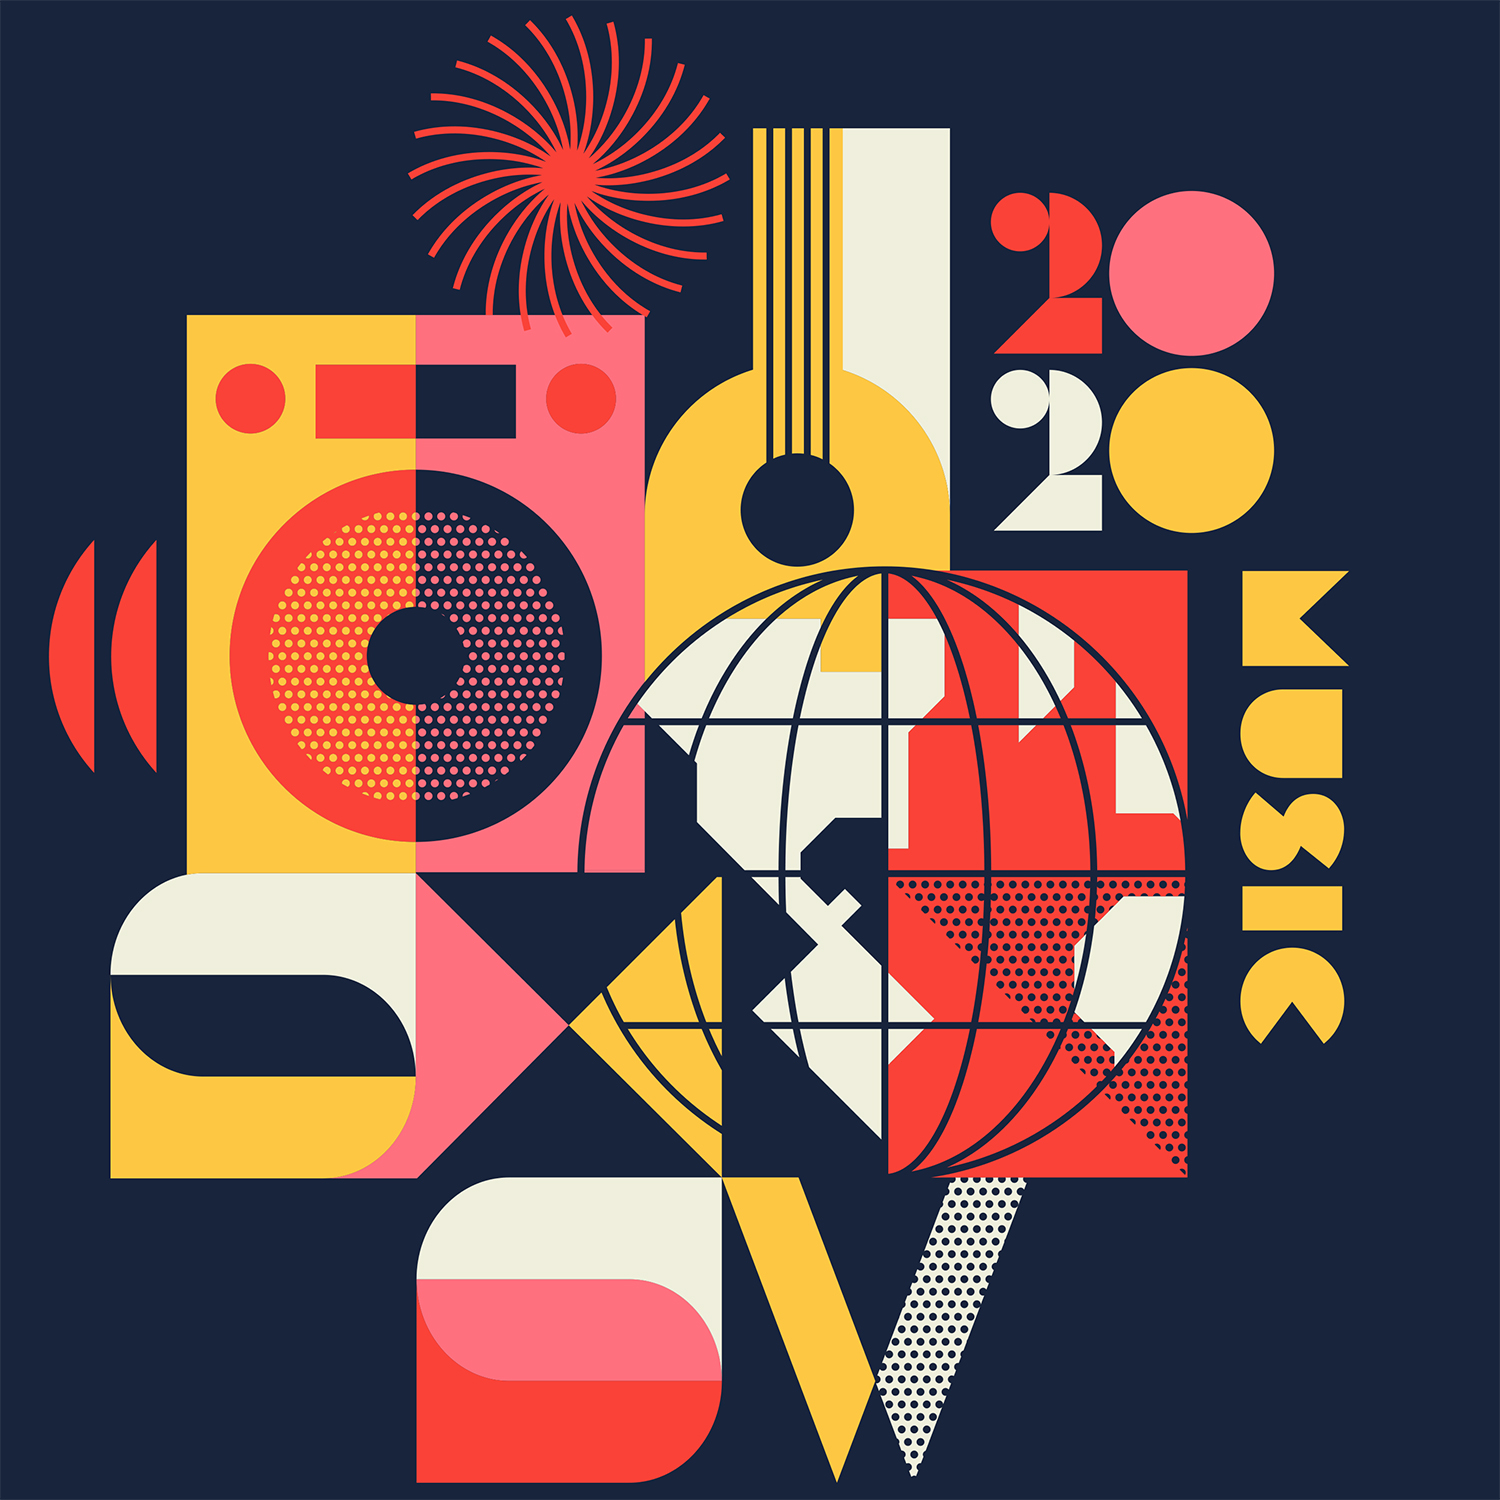 SXSW Music t-shirt artwork for 2020 by Ty Mattson